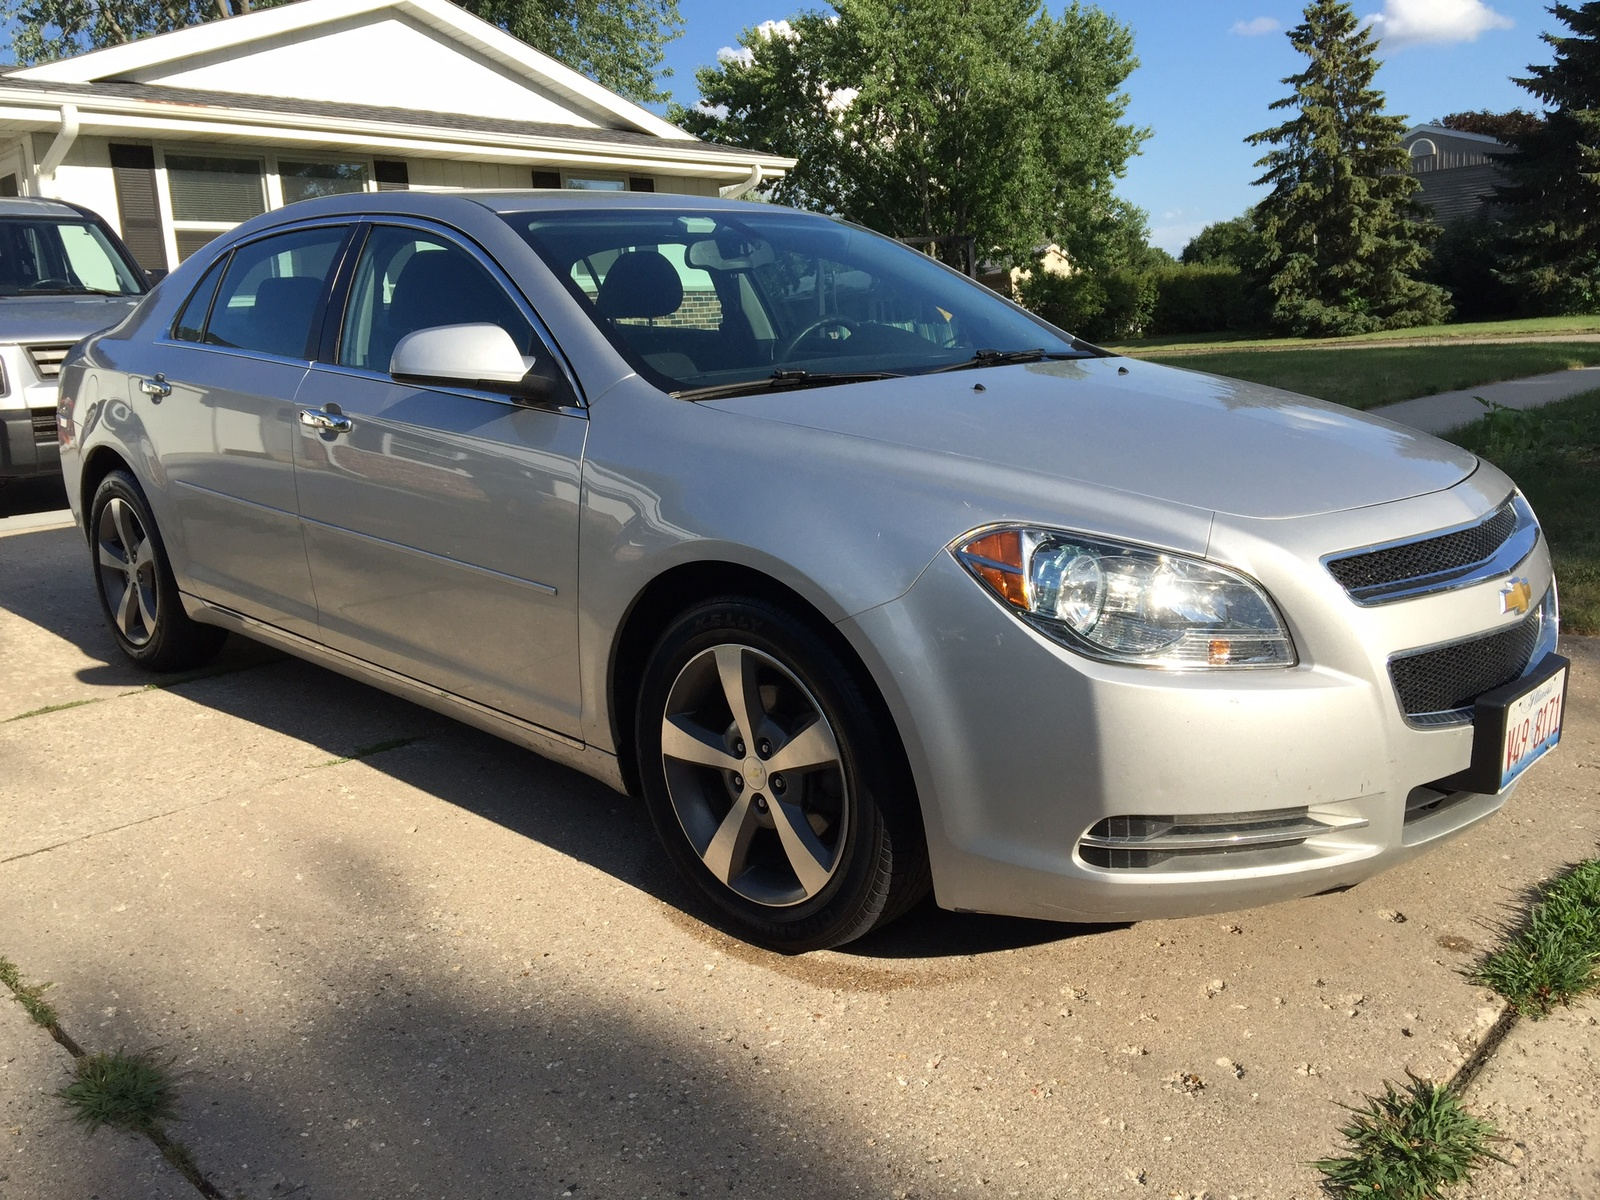 2013 chevrolet malibu for sale in madison wi cargurus. Black Bedroom Furniture Sets. Home Design Ideas